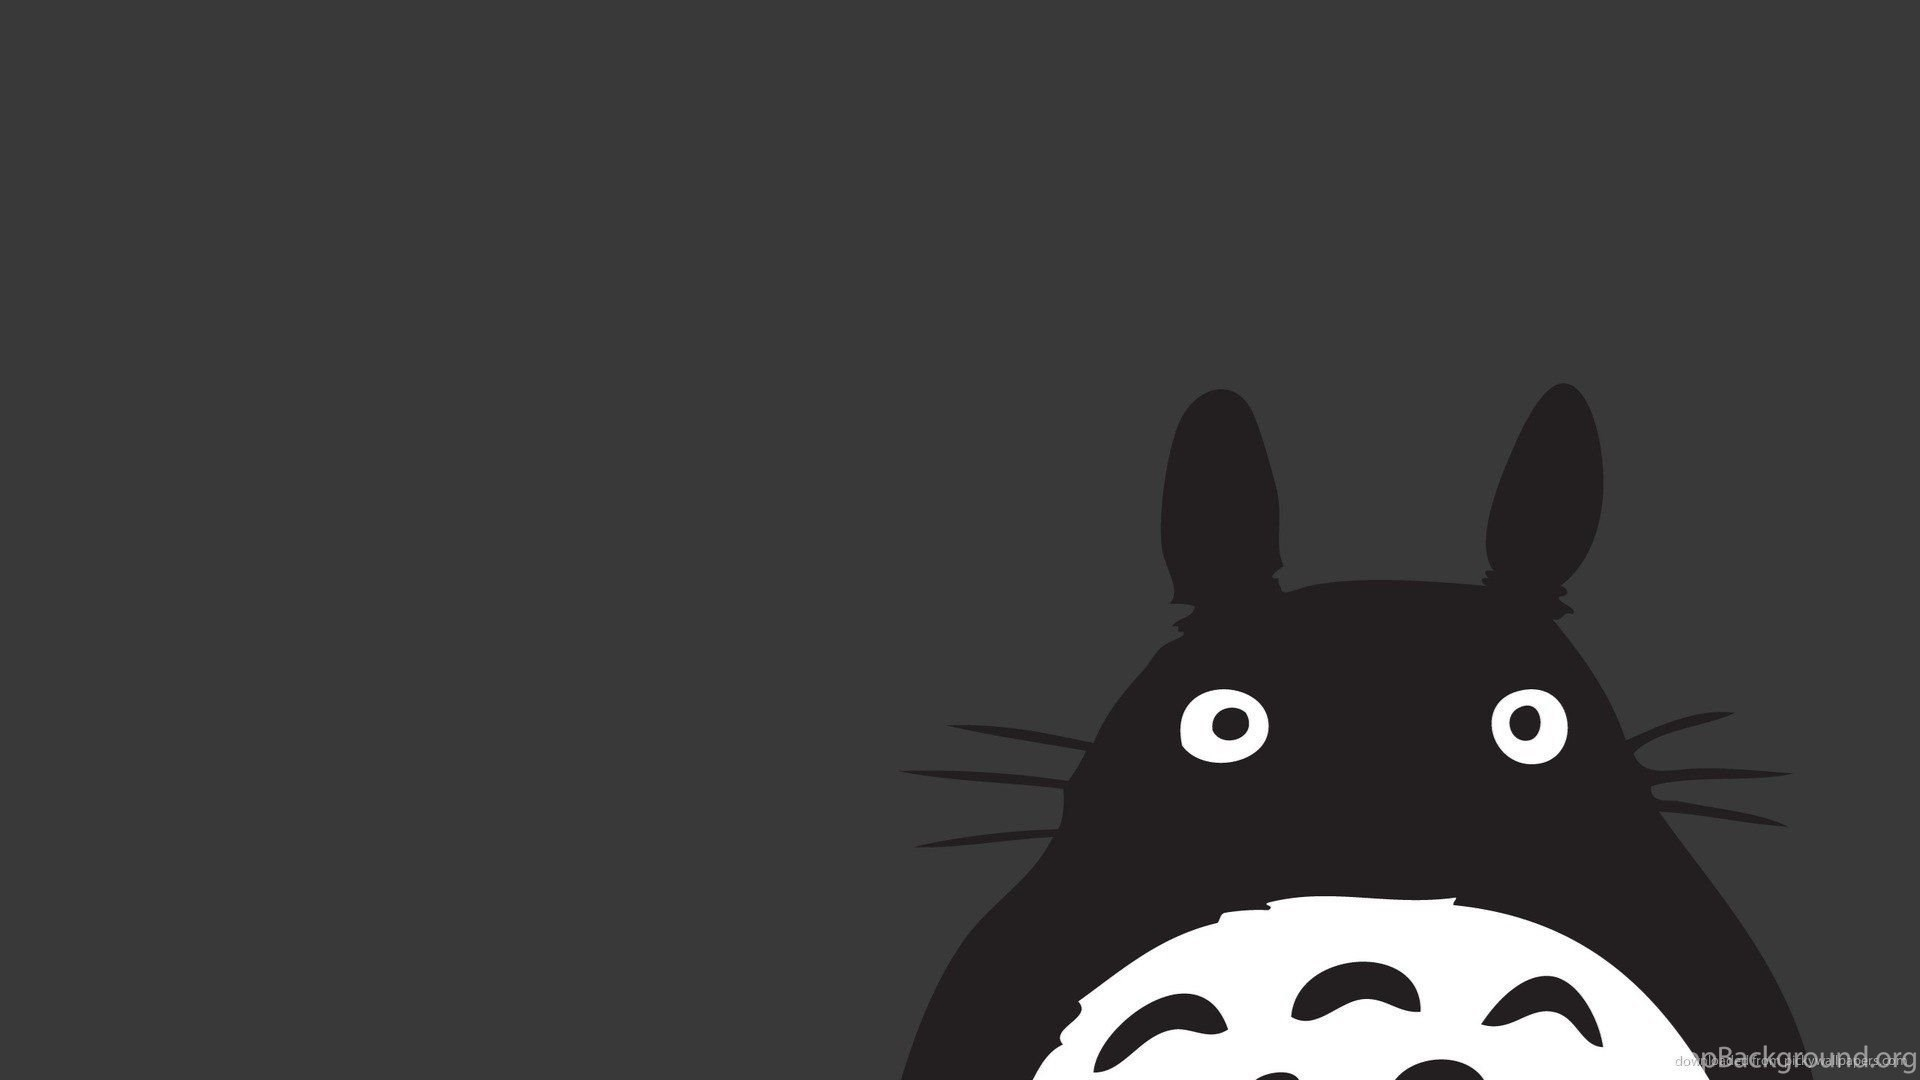 Studio ghibli wallpapers 1920x1080 desktop background popular voltagebd Images